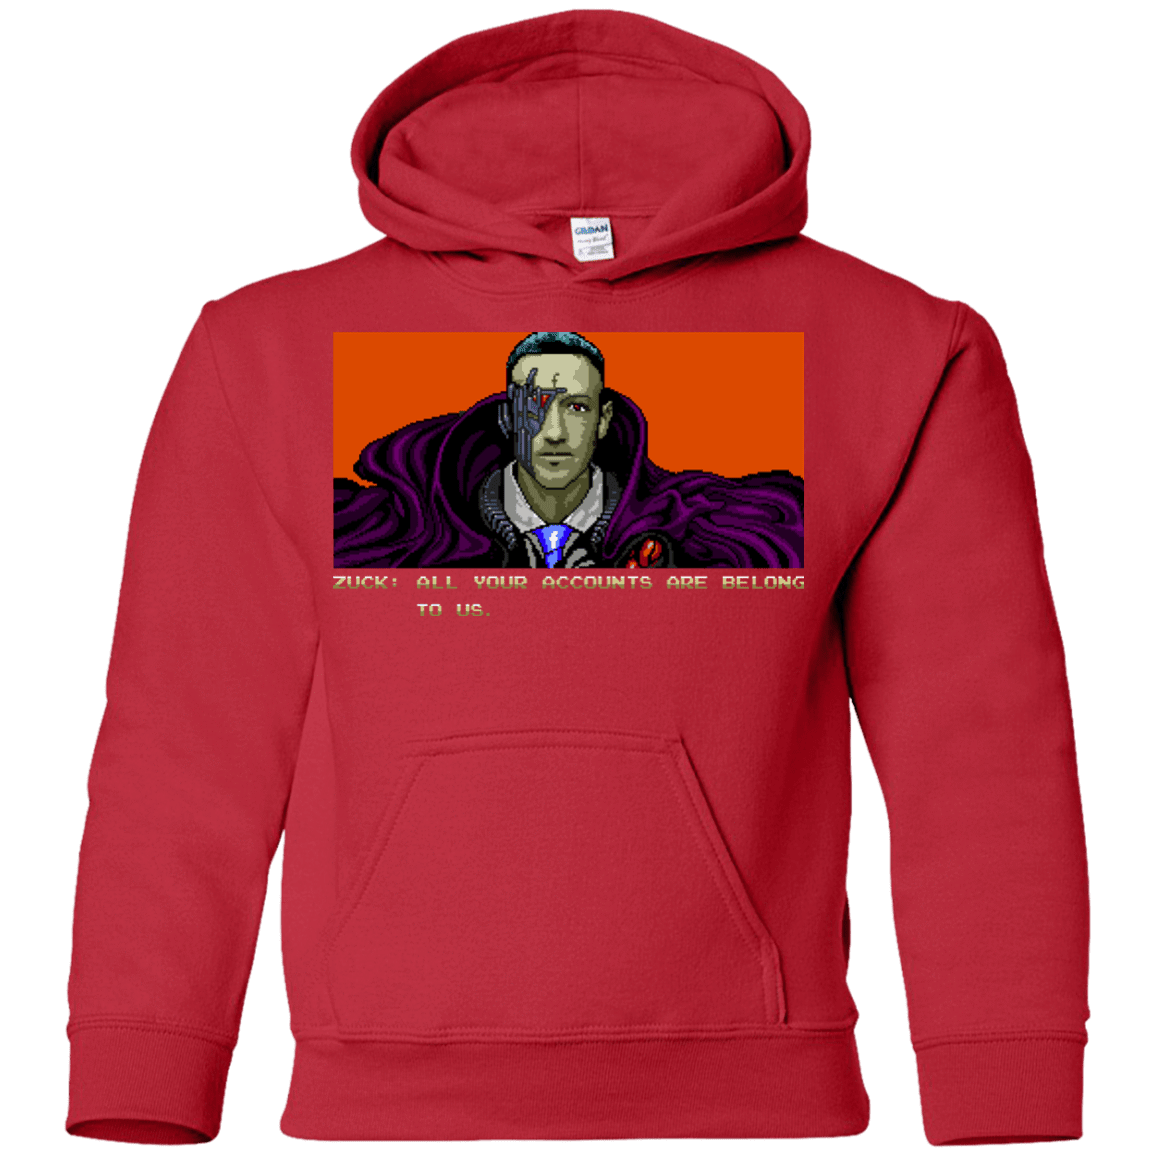 All Your Accounts Youth Hoodie